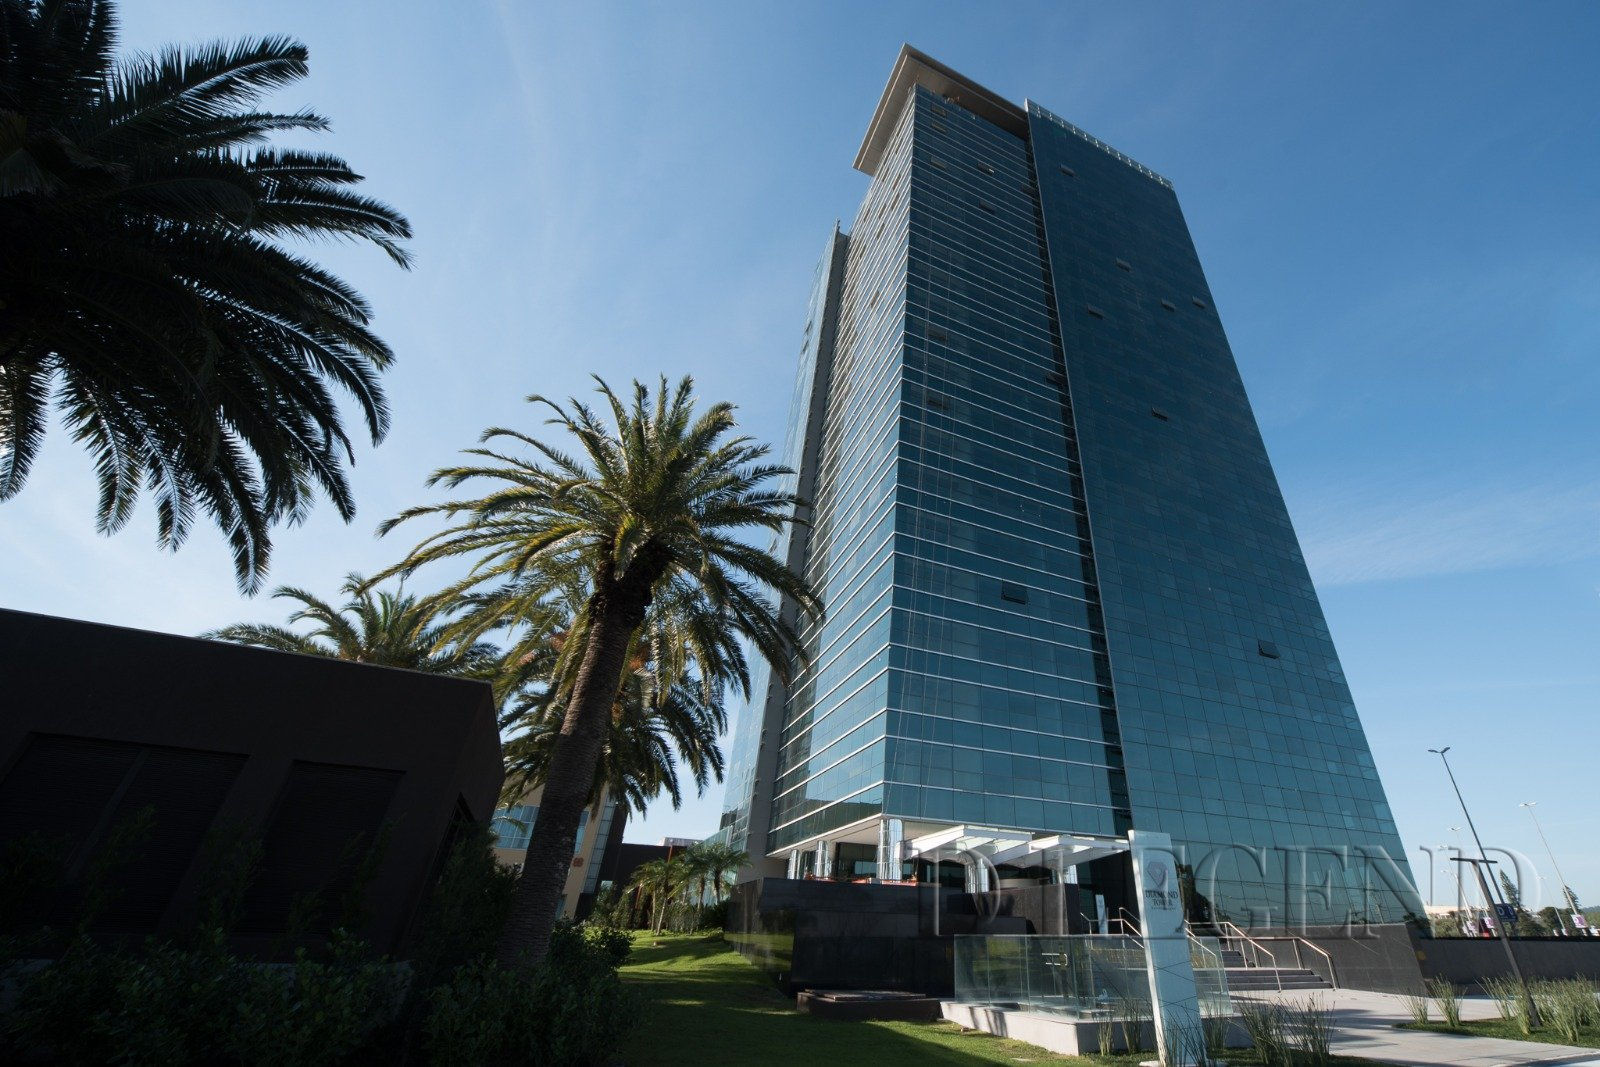 Diamond Tower - Avenida Diario de Noticias, 400 - Cristal - Porto Alegre